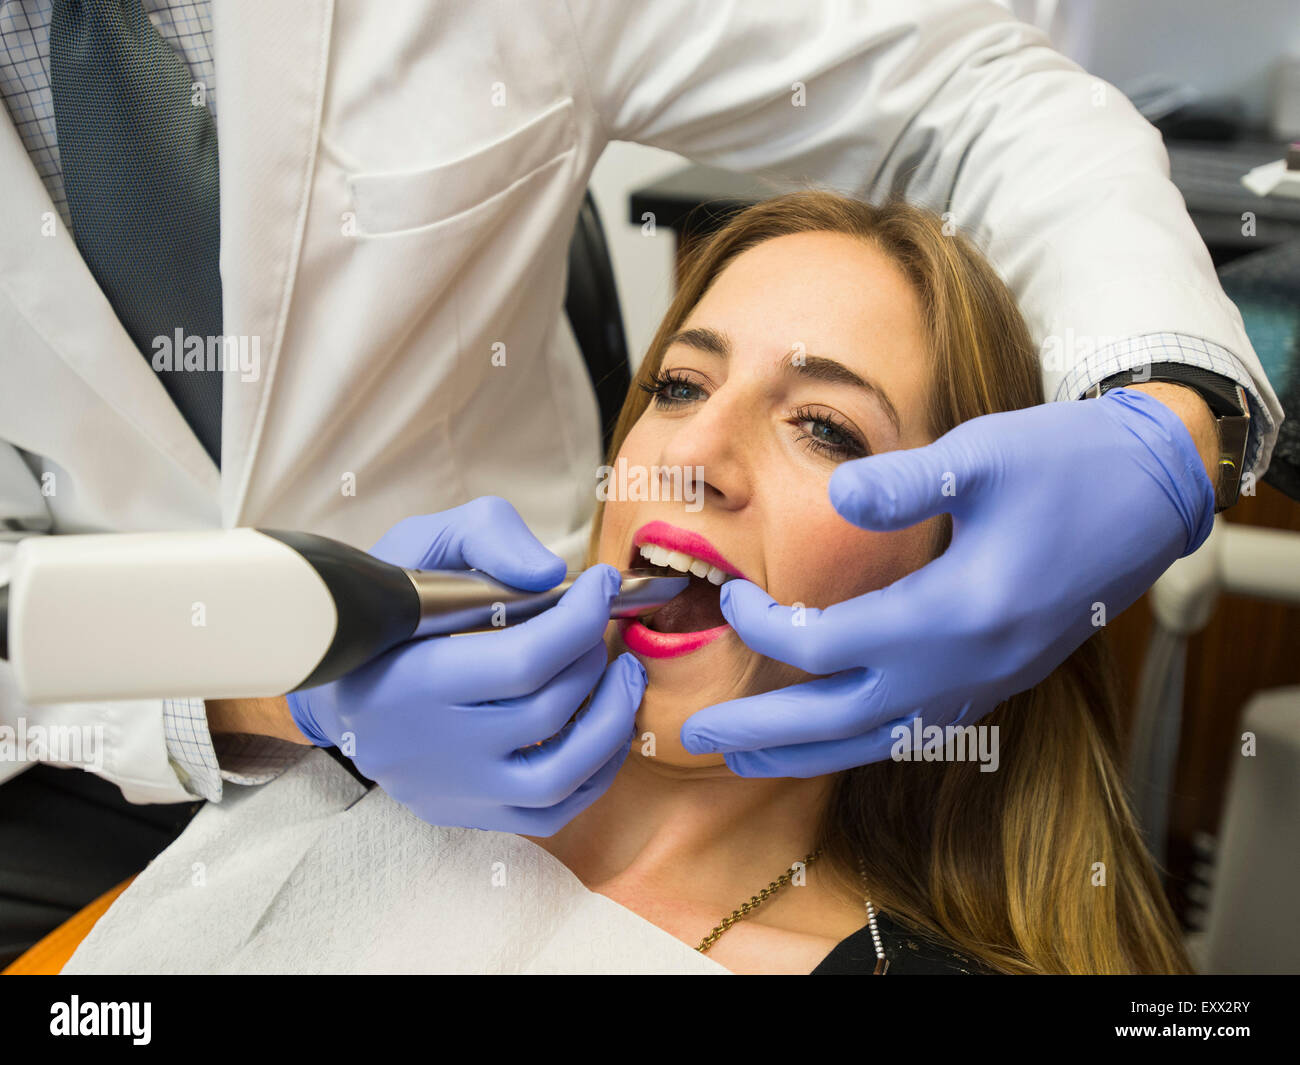 Dentist and patient in dentist's office - Stock Image